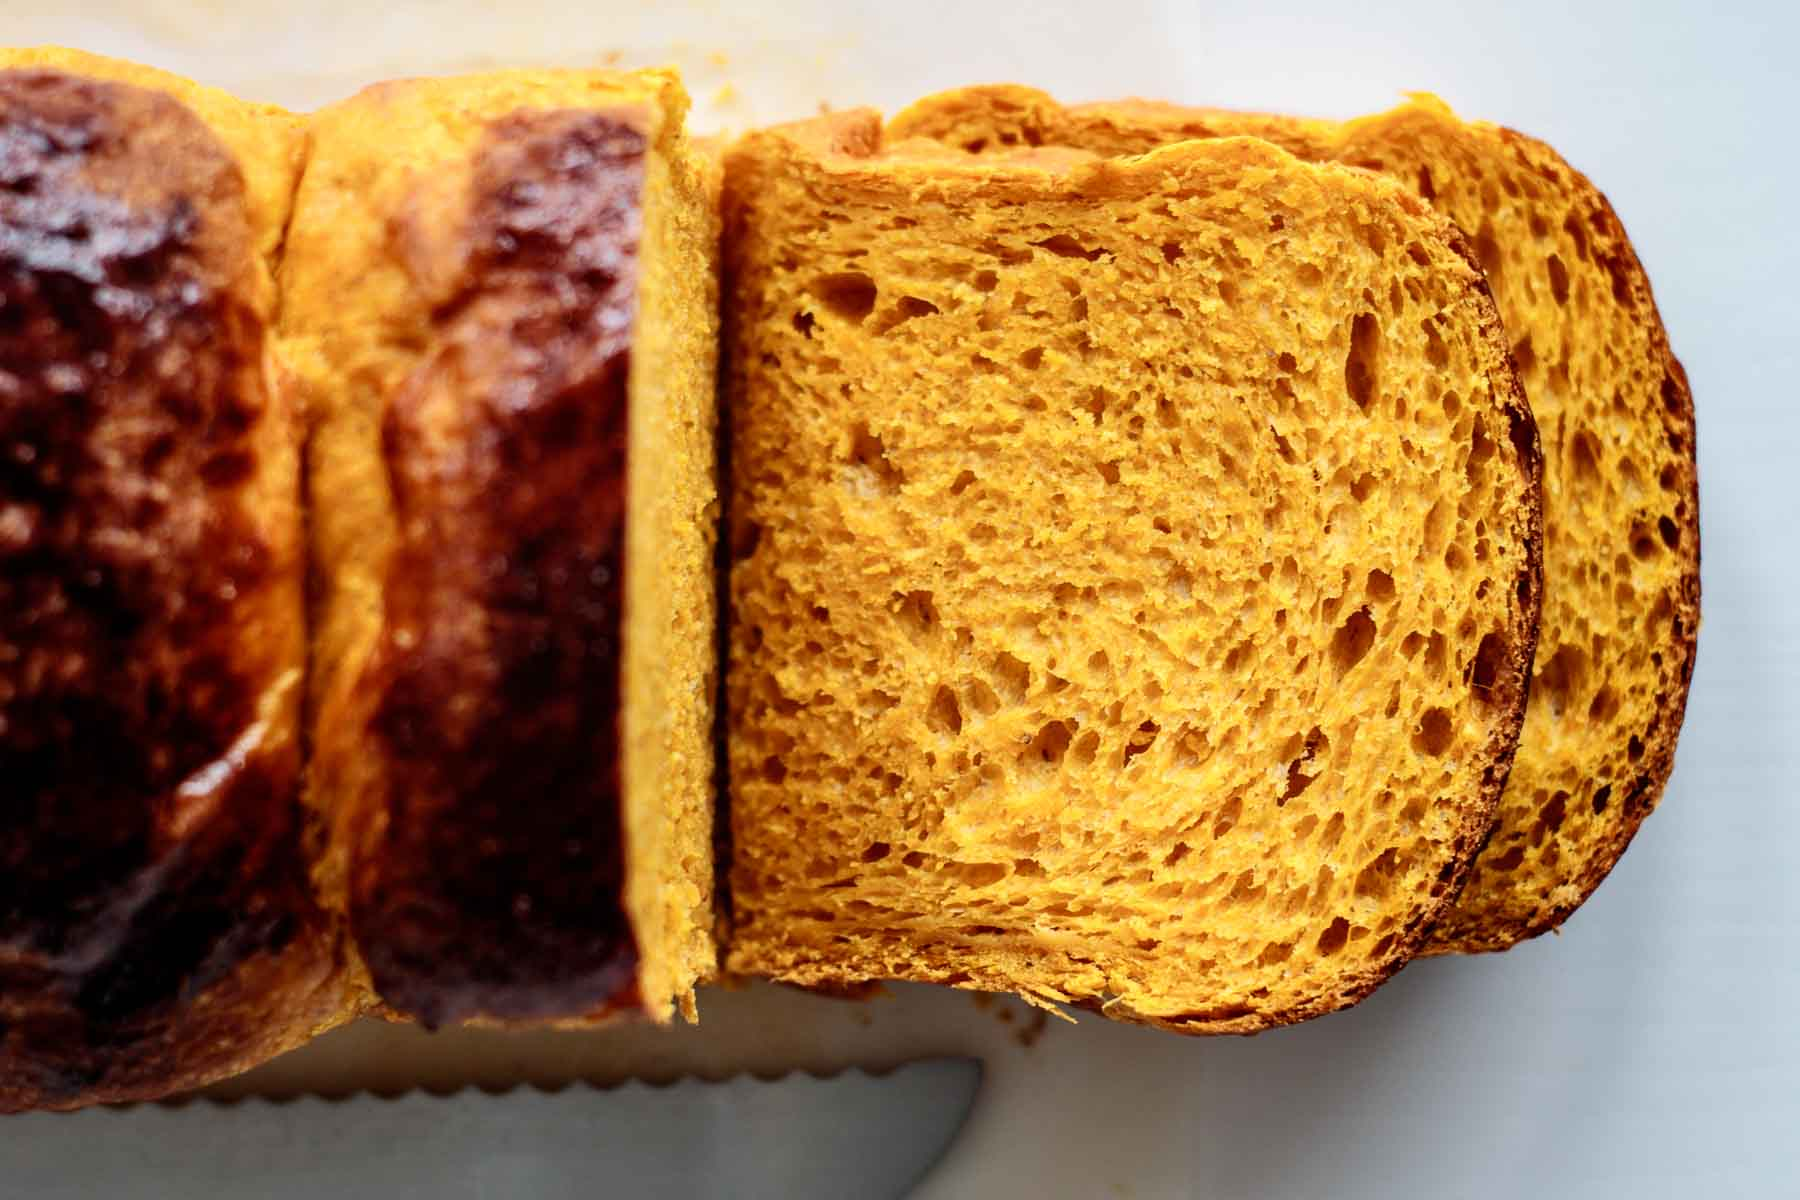 close up on sliced pumpkin brioche, showing its soft and bright orange crumb